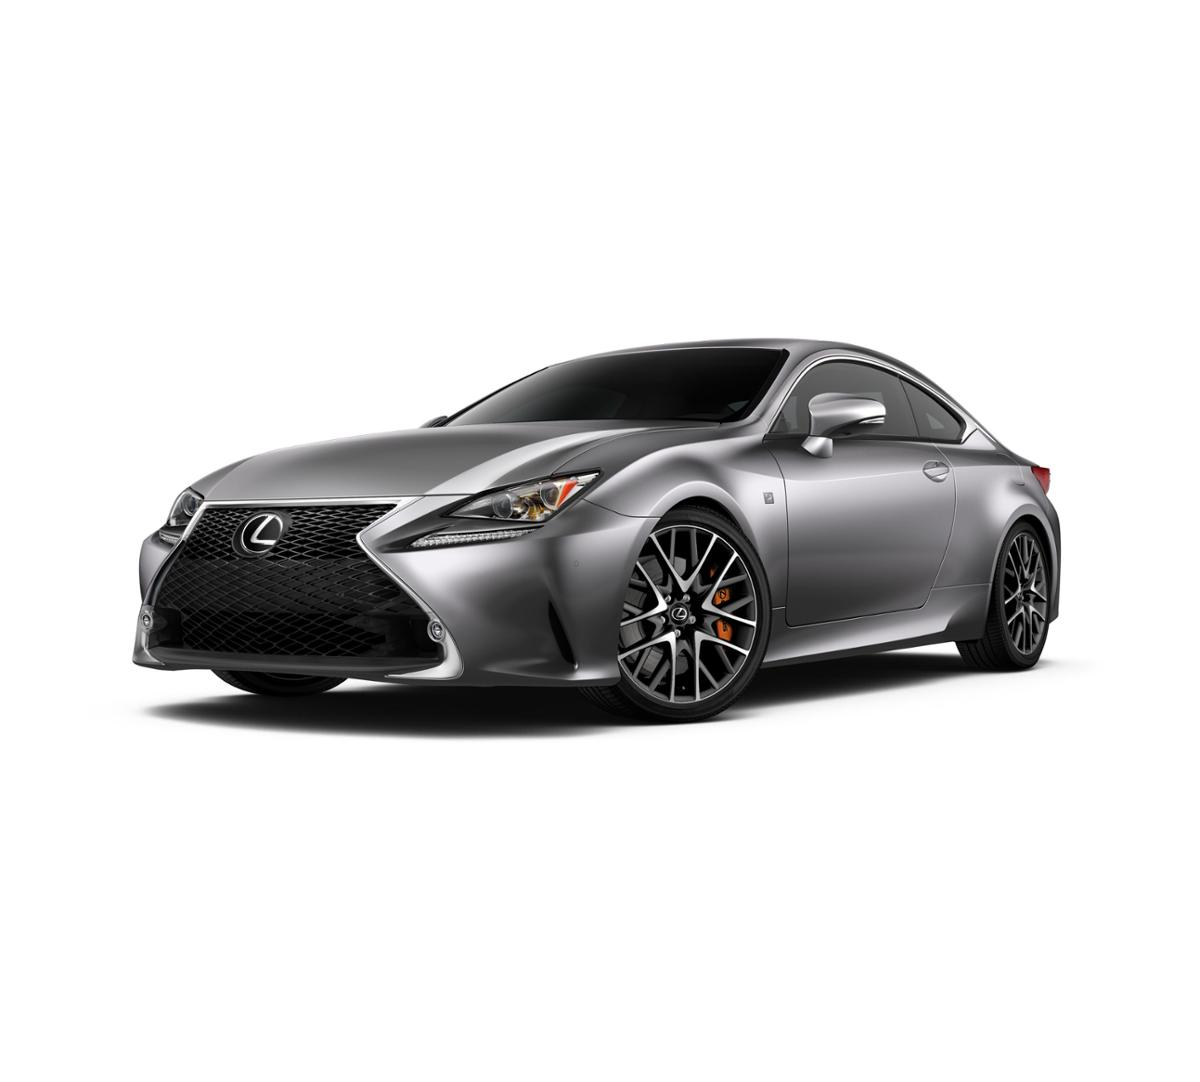 2018 Lexus RC 300 Vehicle Photo in Bedford, NH 03110